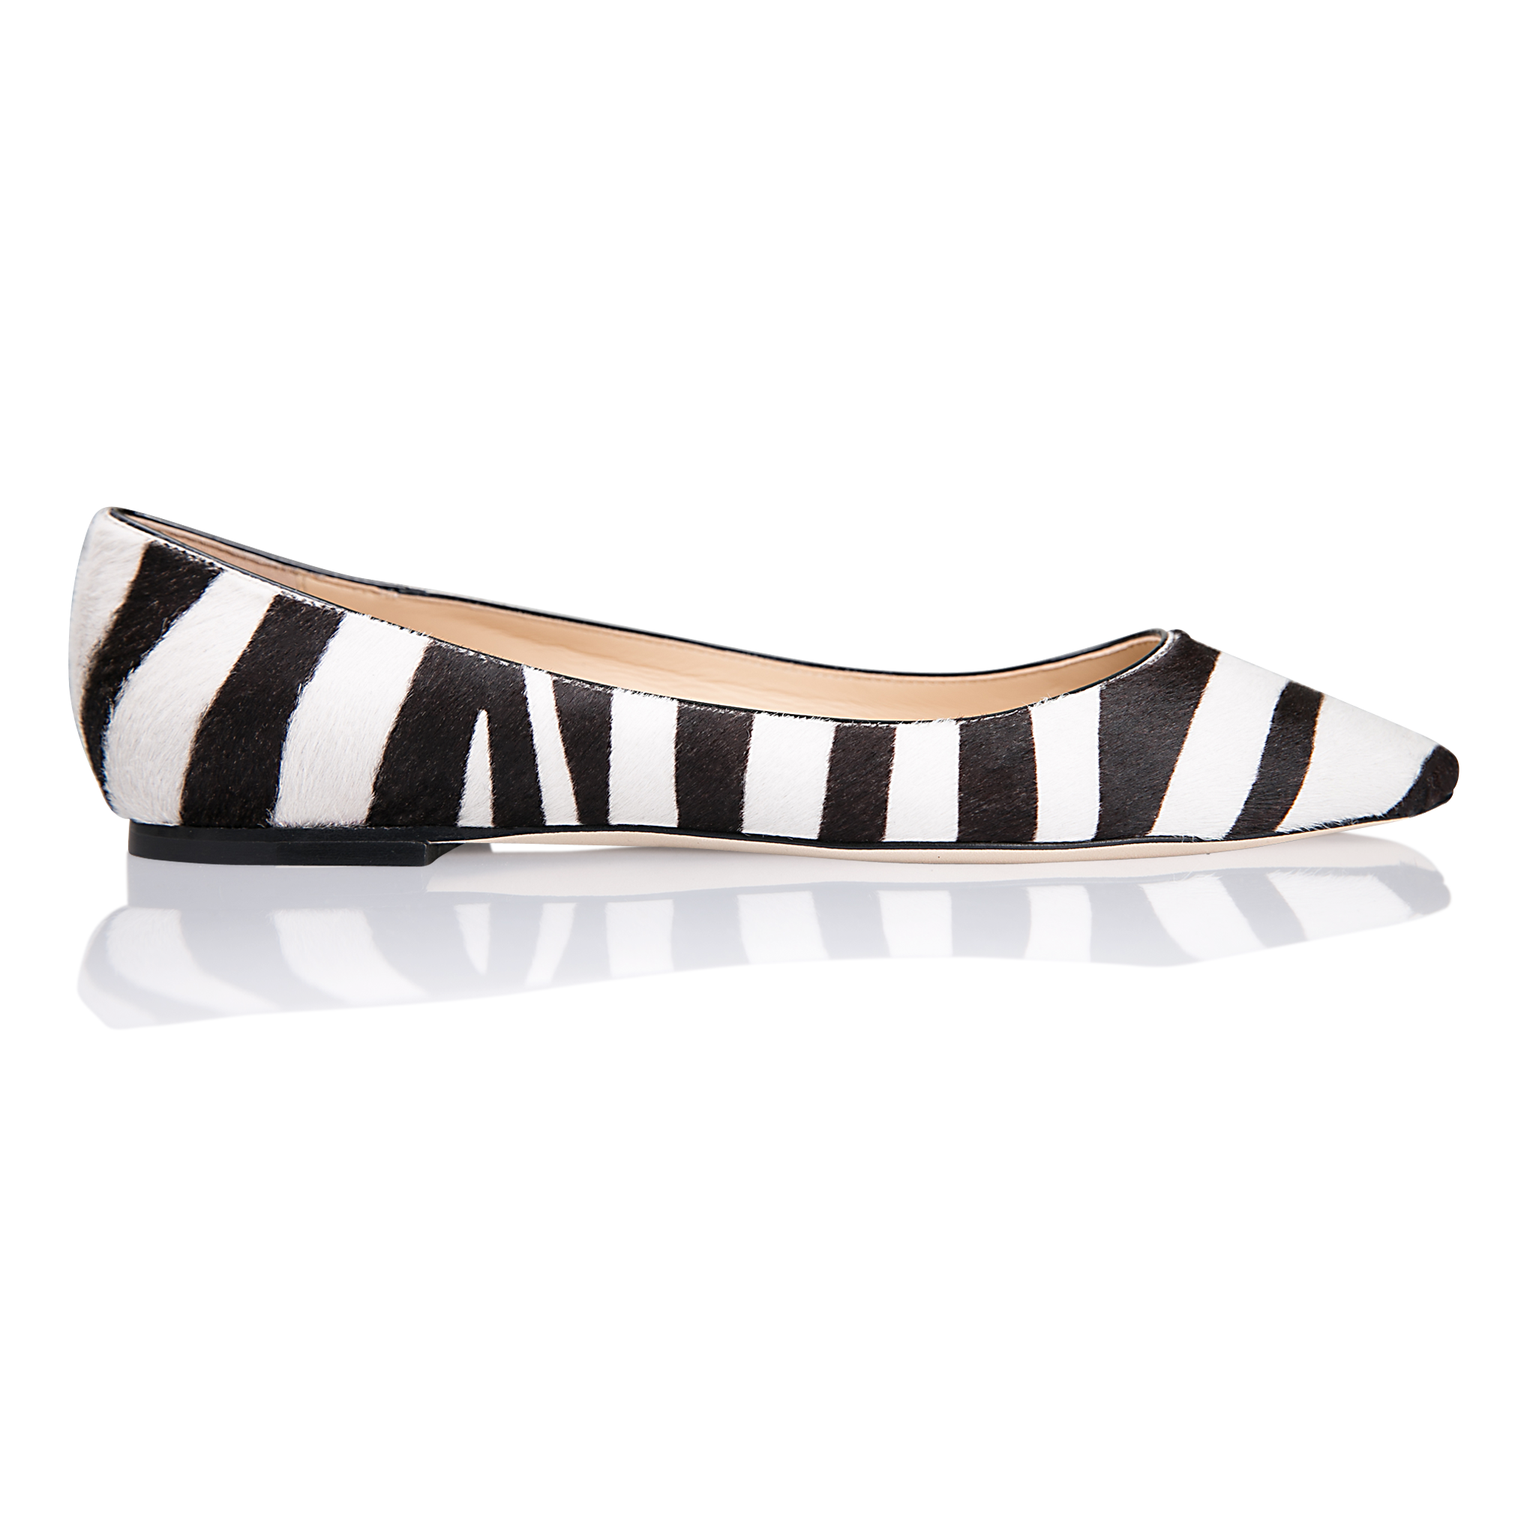 SIENA - Calf Hair Zebra, VIAJIYU - Women's Hand Made Sustainable Luxury Shoes. Made in Italy. Made to Order.